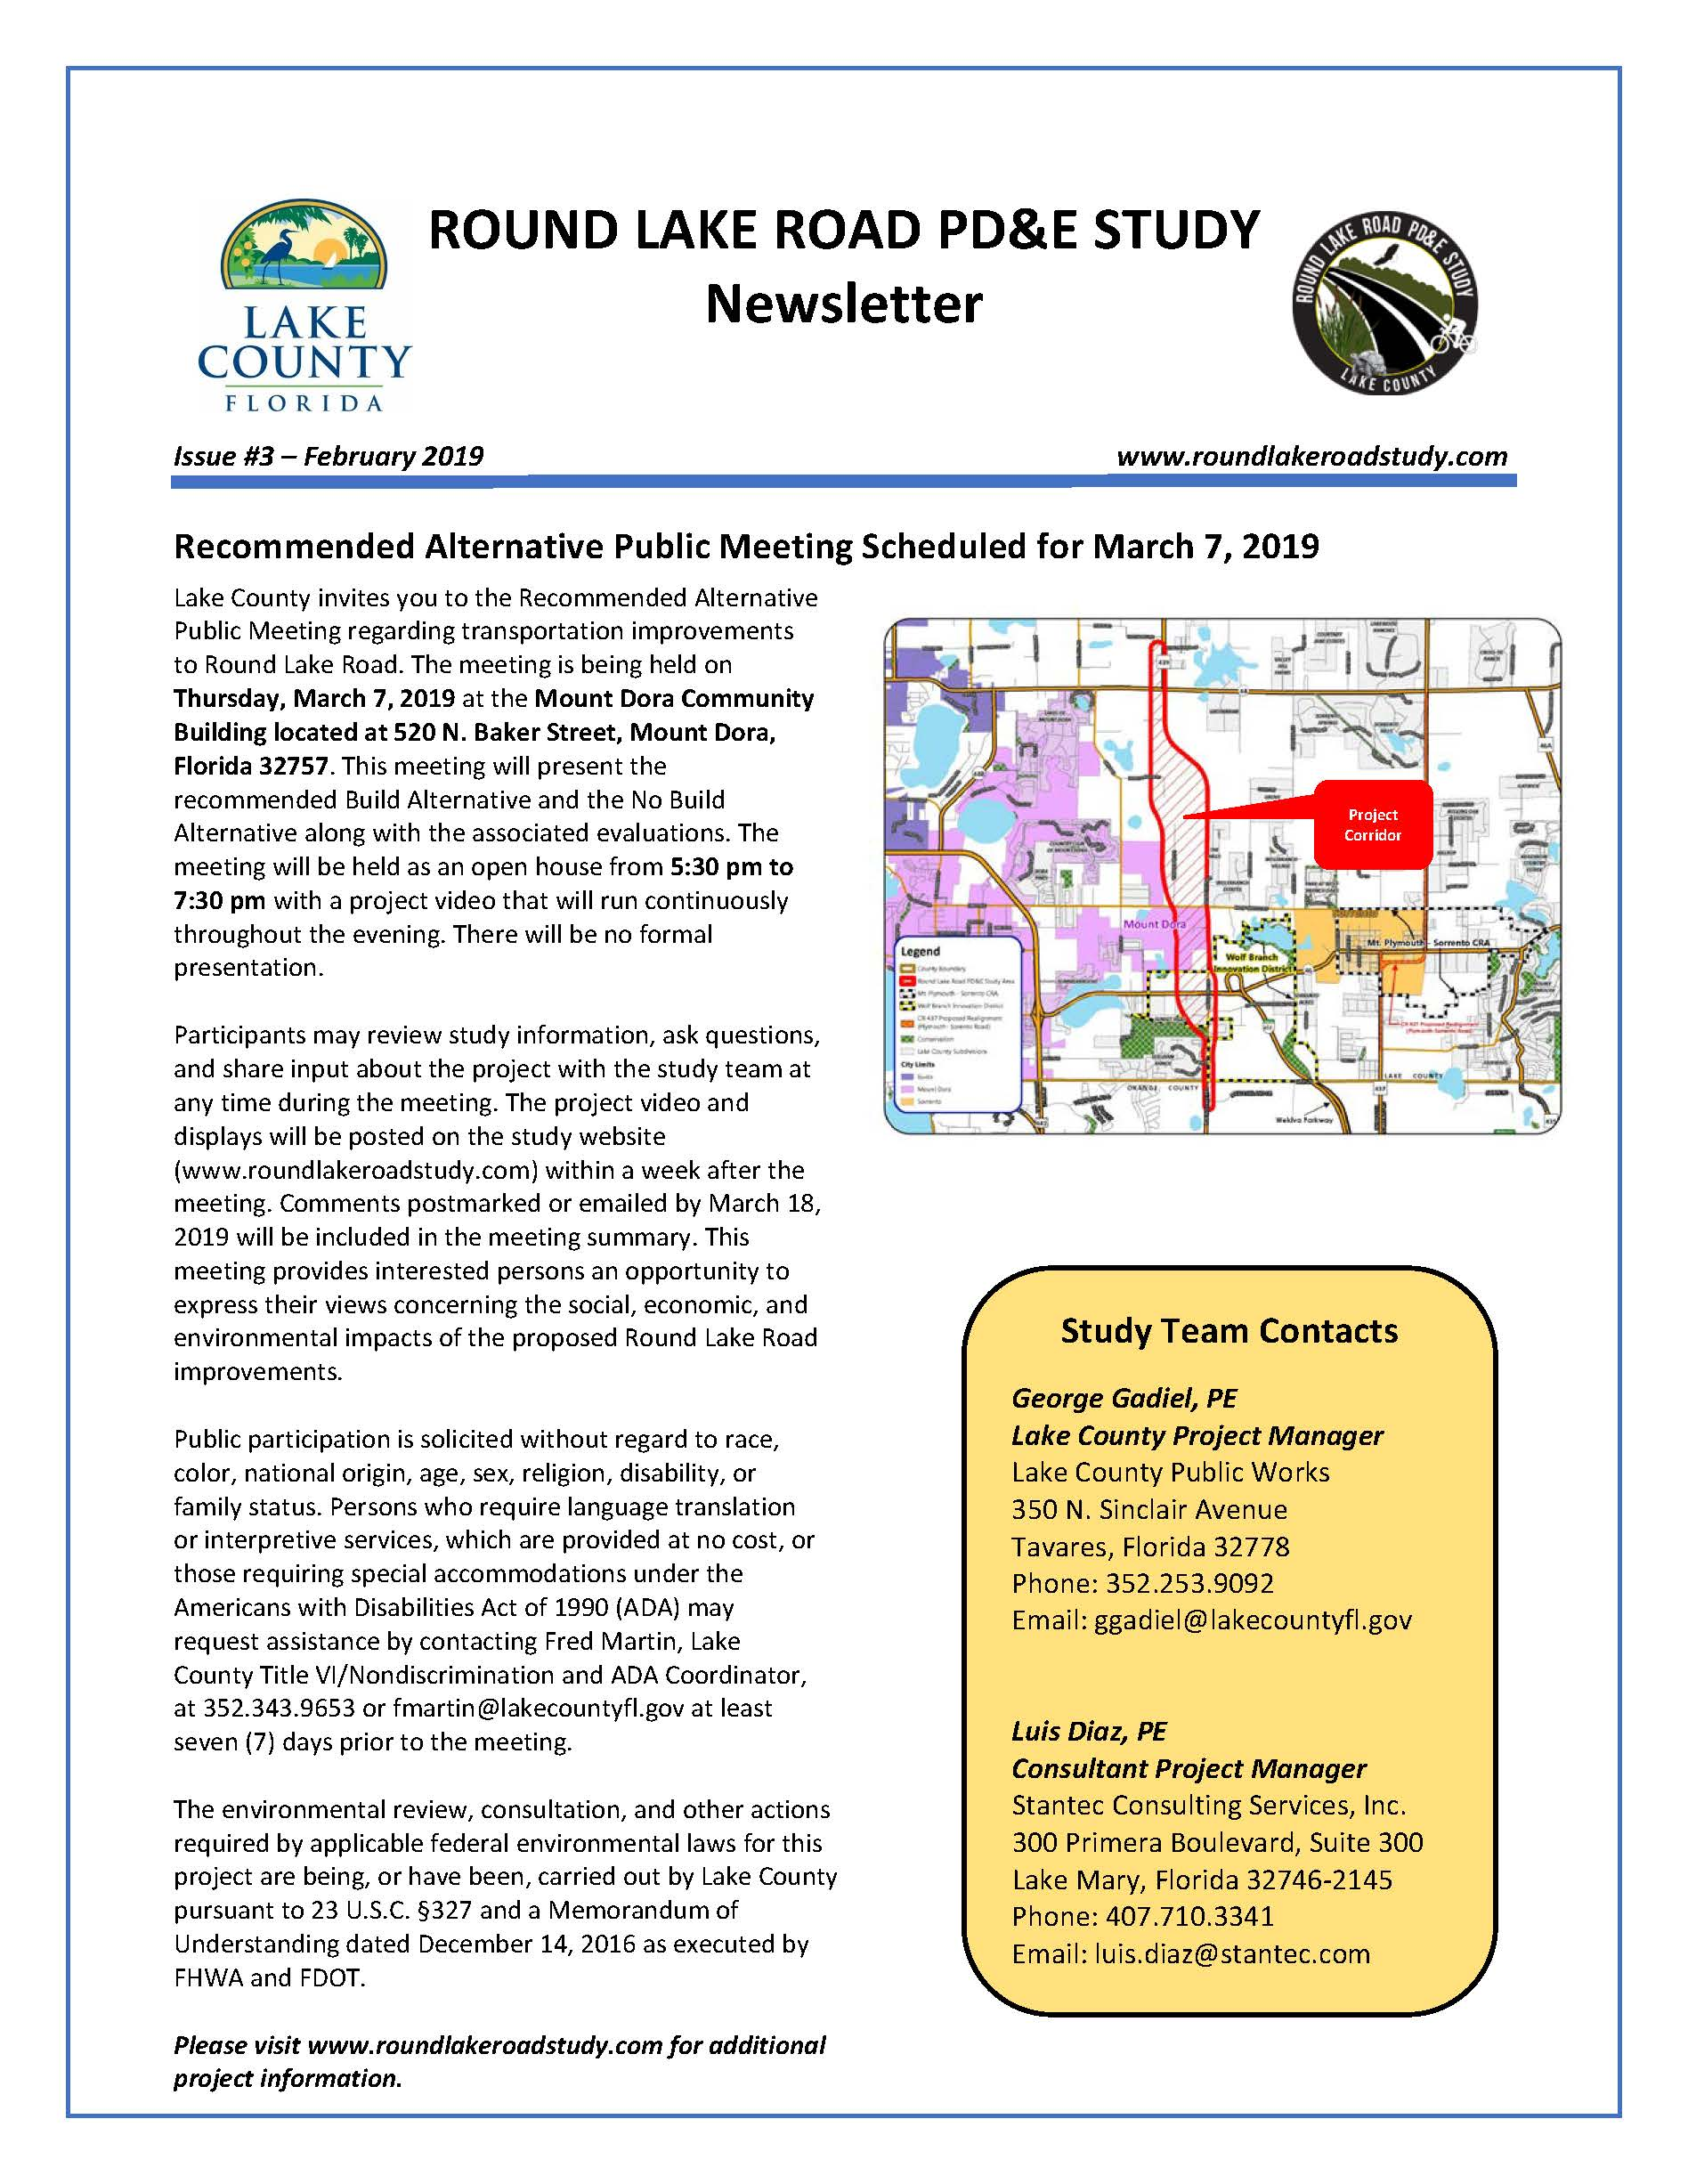 Round Lake Road PDE Study Newsletter No. 3_Page_1